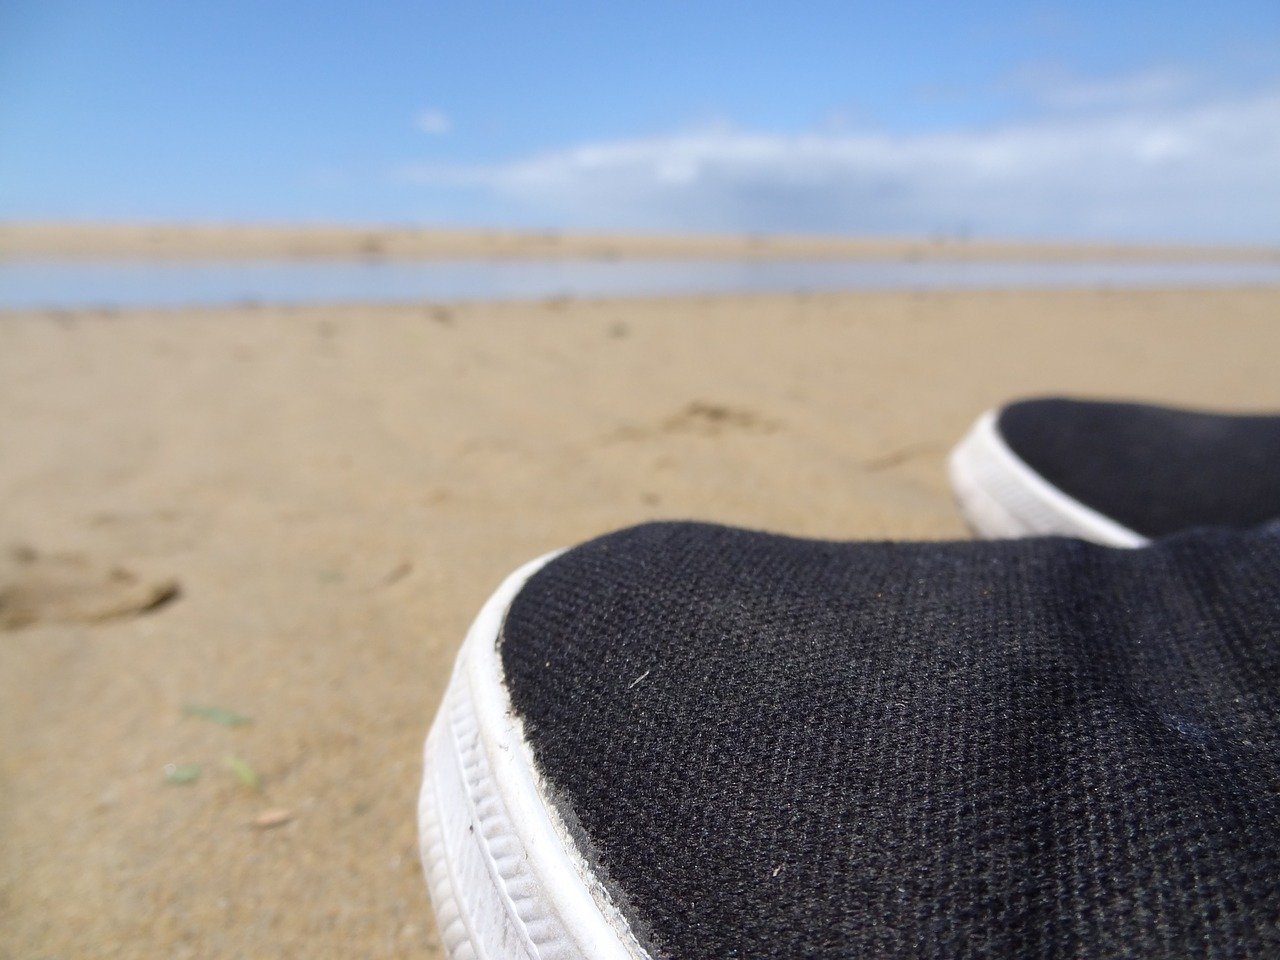 close up of black and white water shoes on the beach